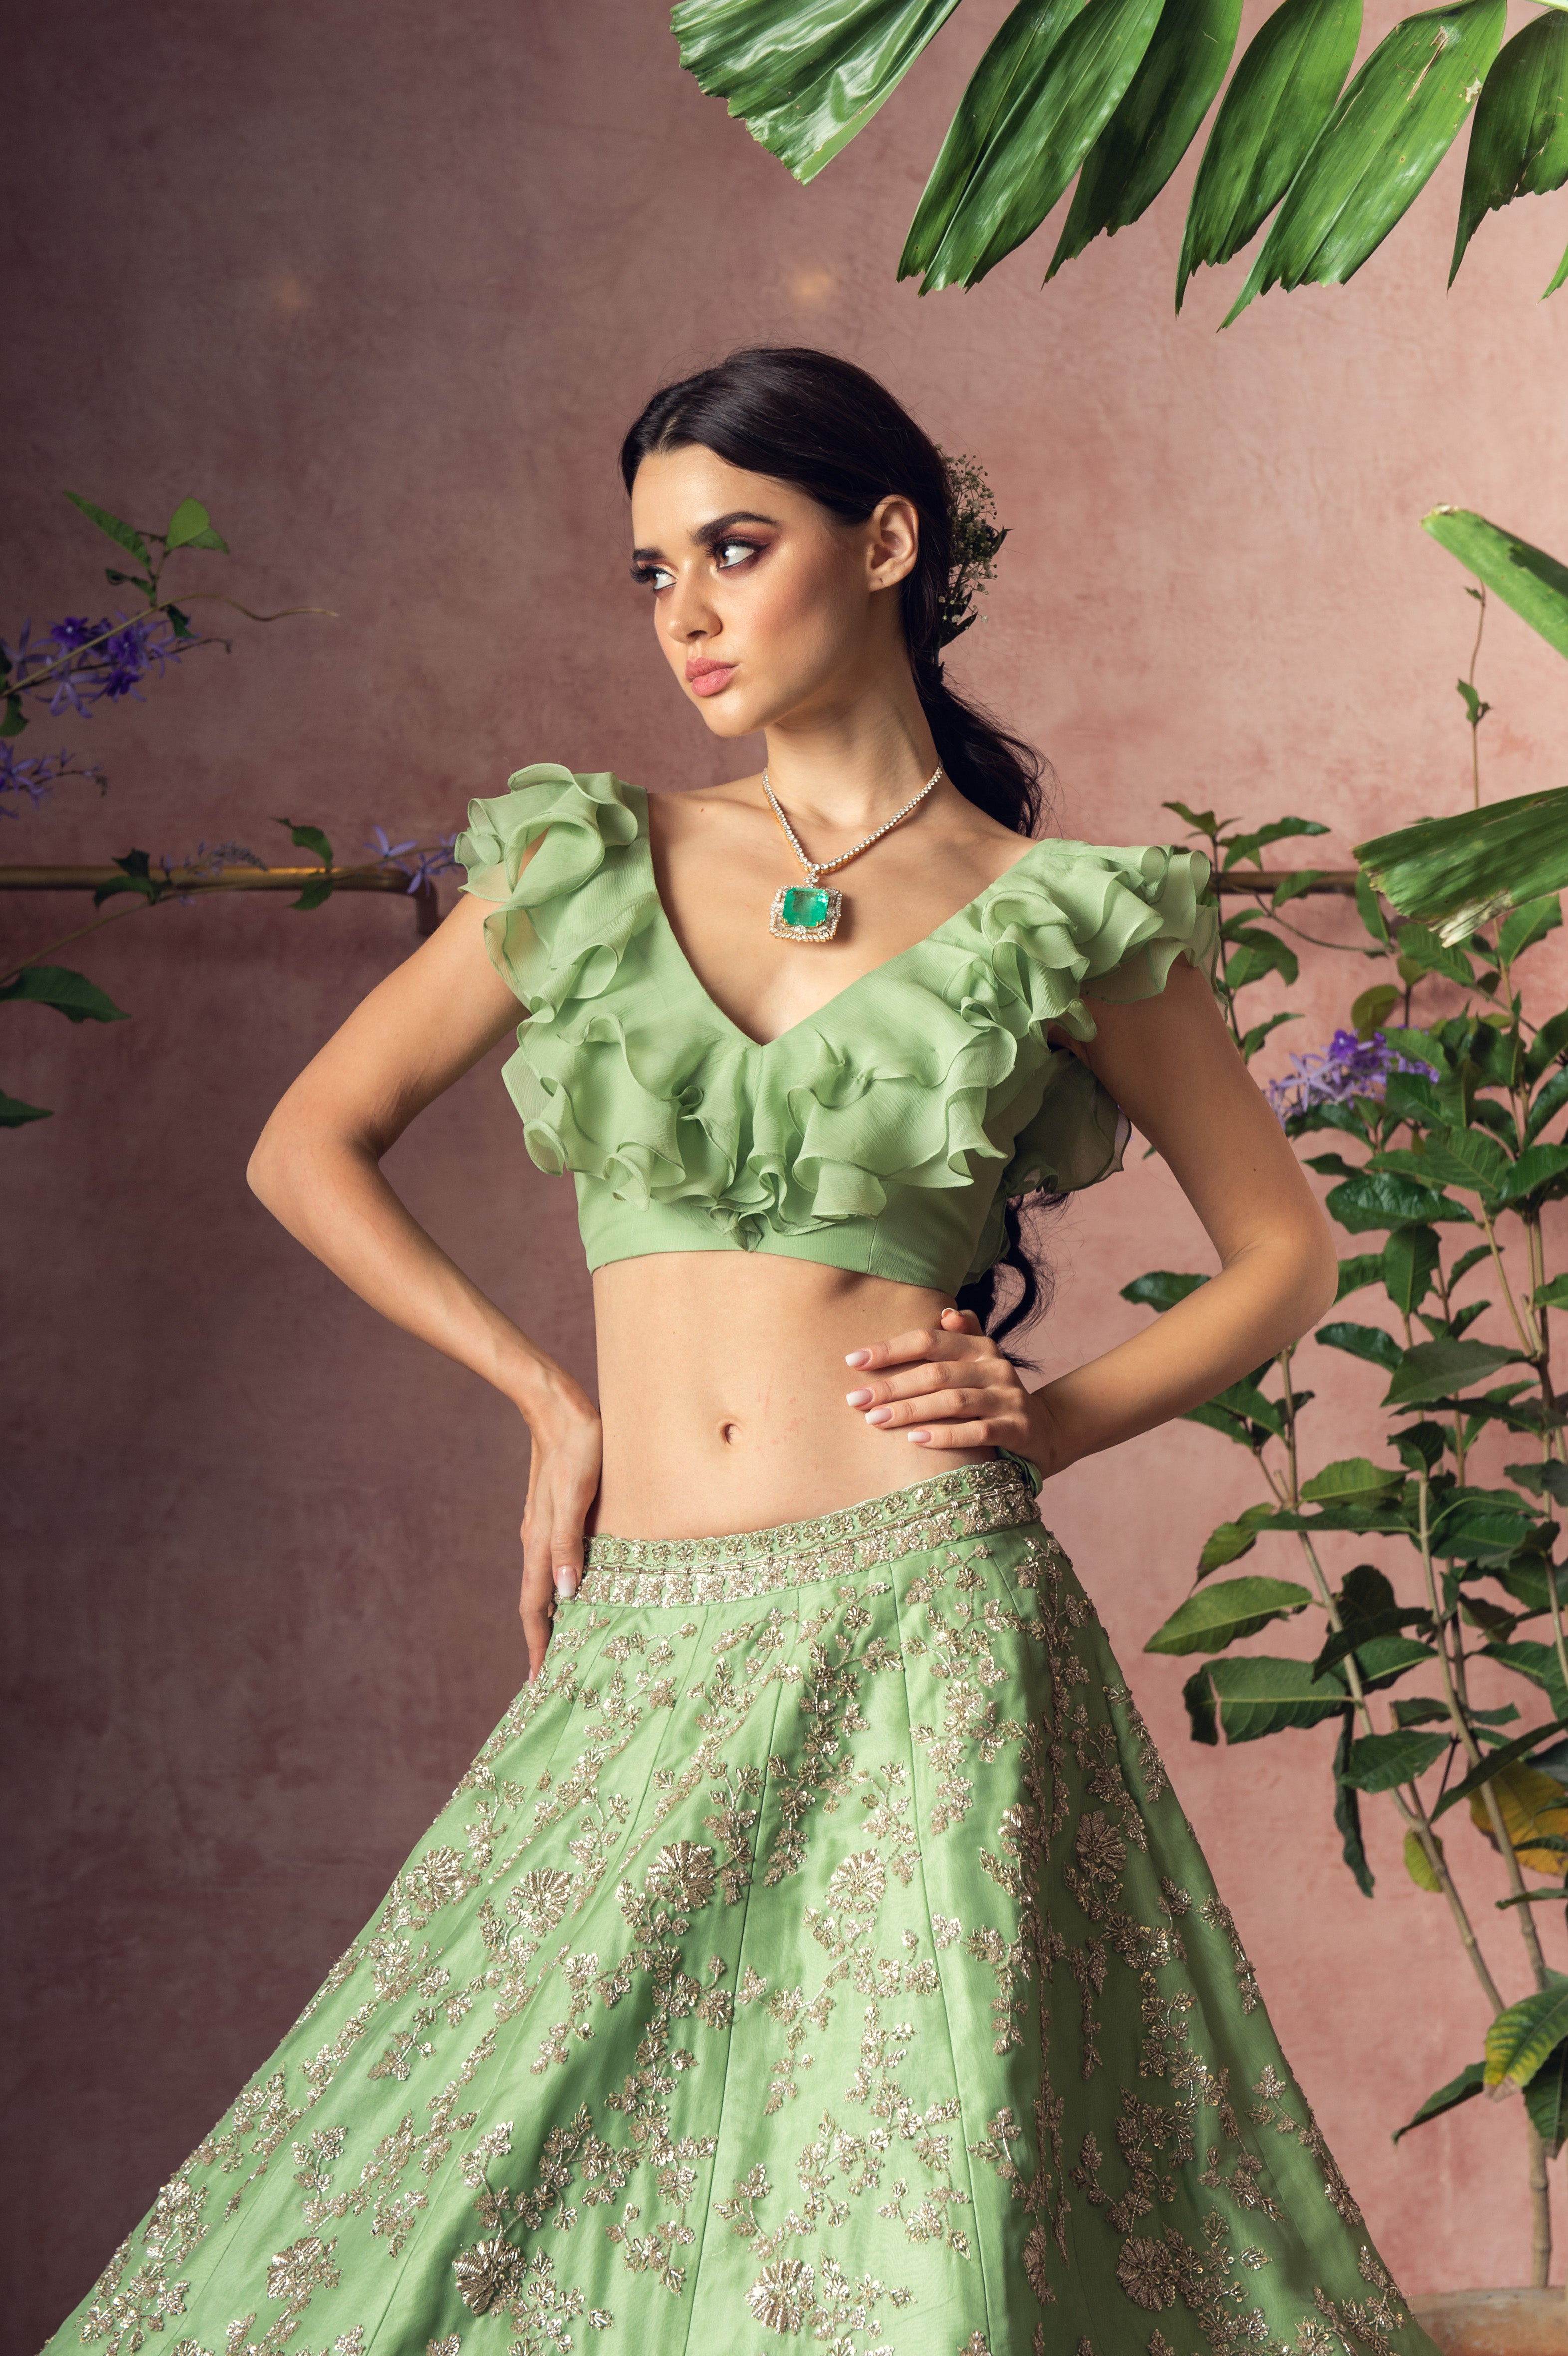 Organza Cutdana Embroidery Scallop Lehenga with Ruffle Blouse - The Grand Trunk